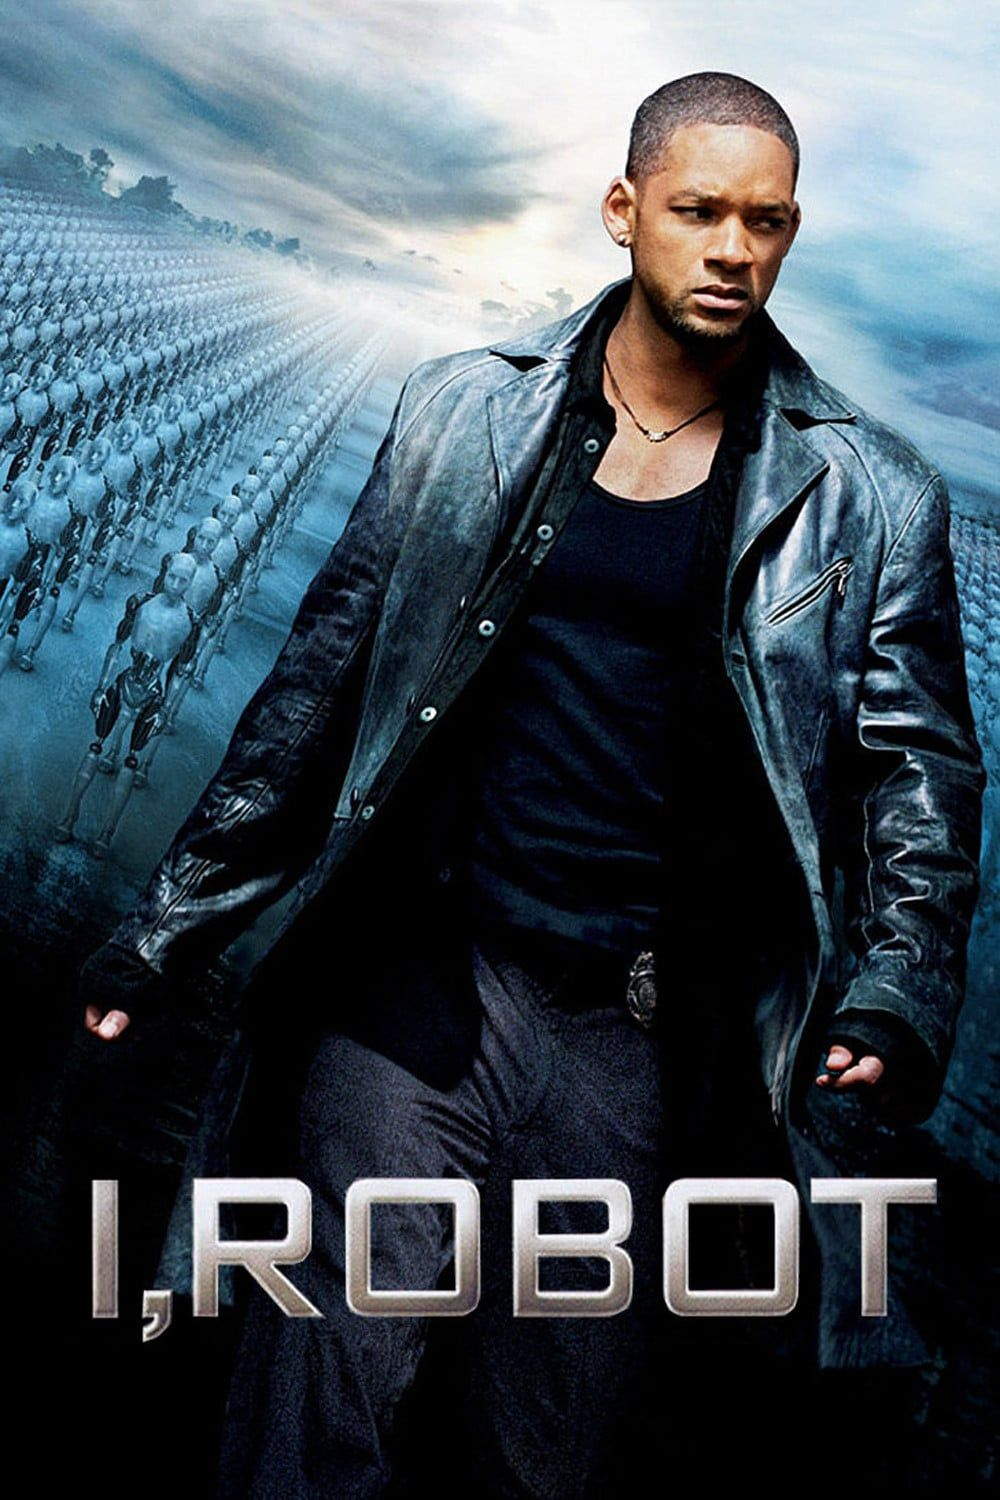 I Robot 123movies Hdvix 123movies Putlocker Poster Freefullmovie Hdvix Movie720p Watch Full Movi Full Movies Online Free Streaming Movies Free